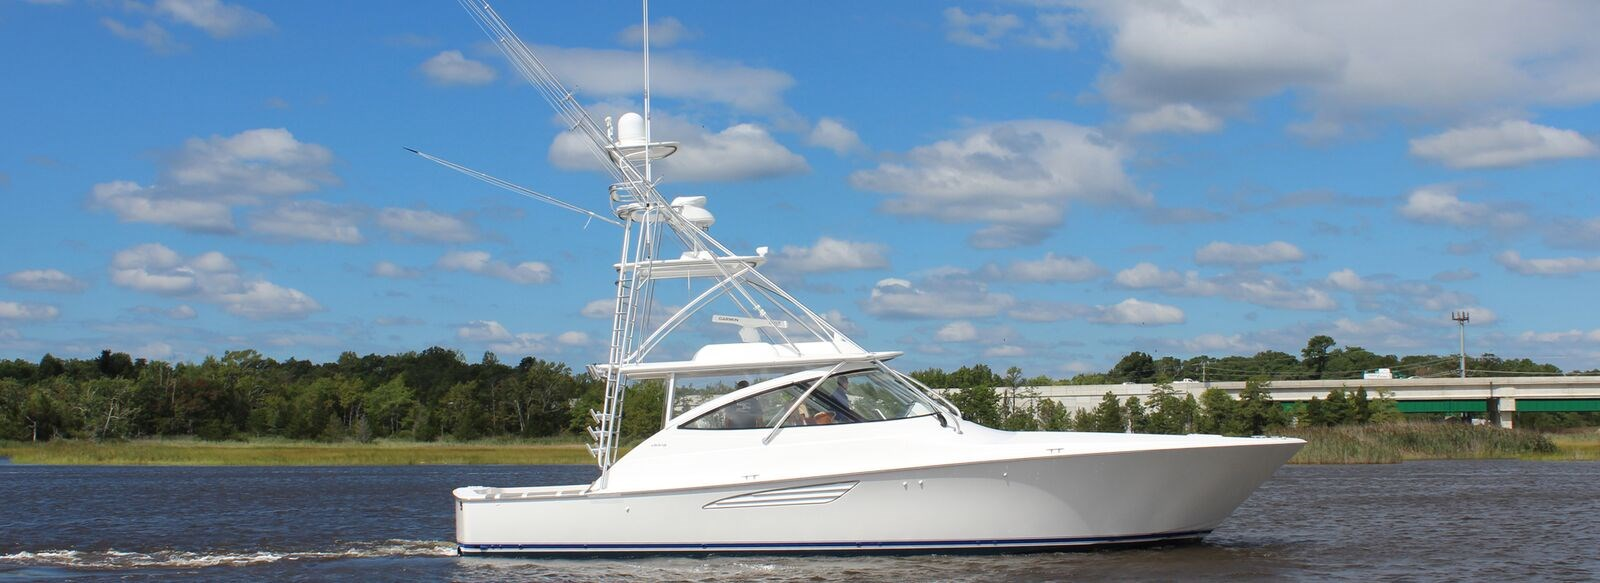 New Viking 48 Open Yachts For Sale